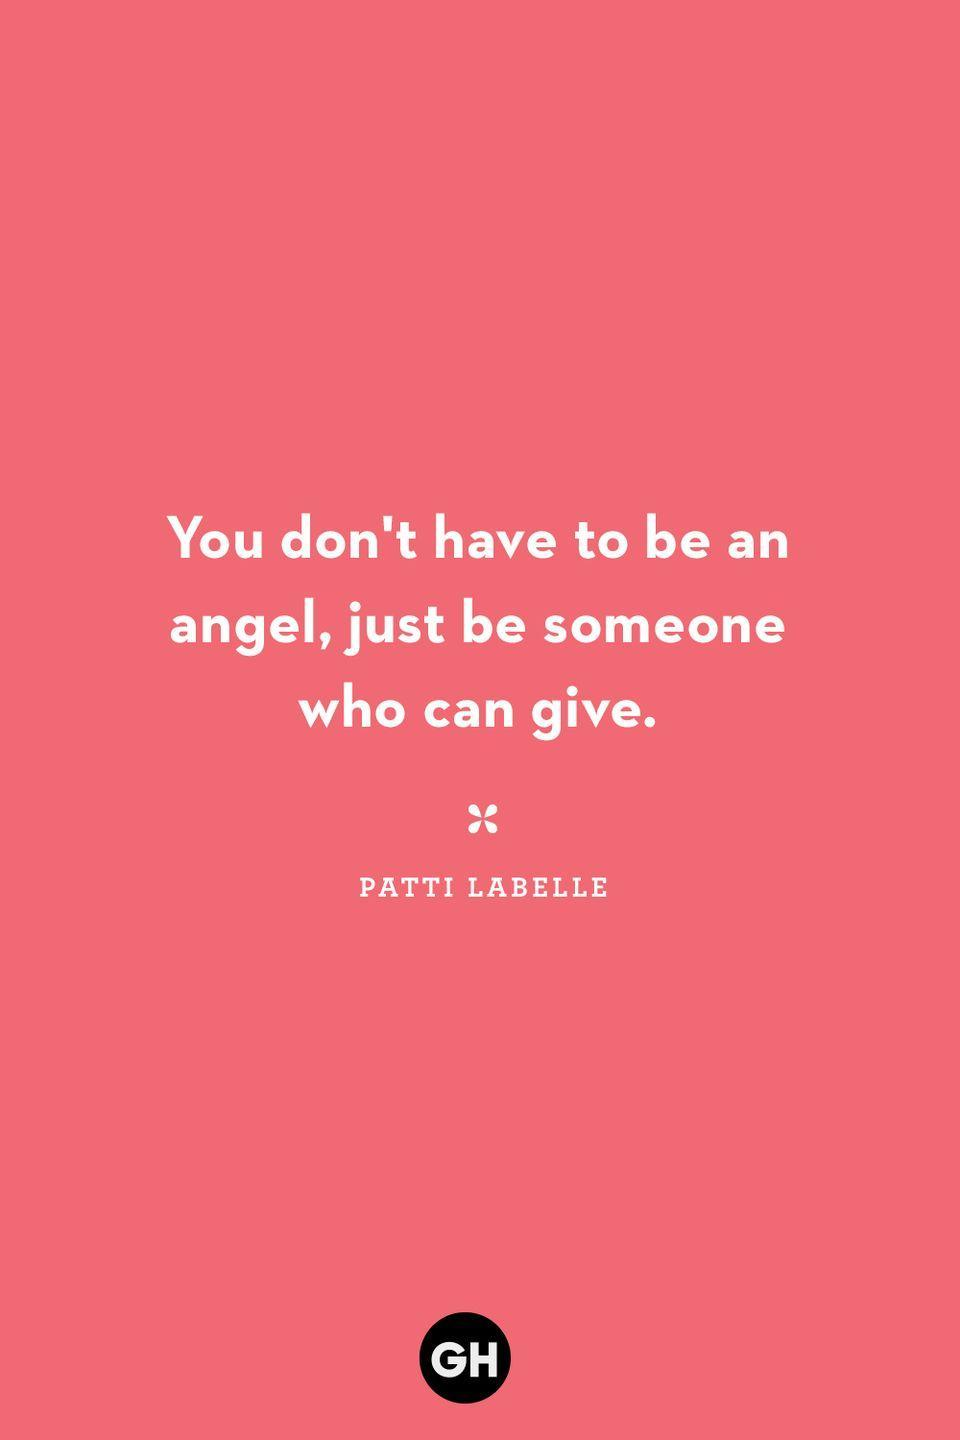 <p>You don't have to be an angel, just be someone who can give.</p>